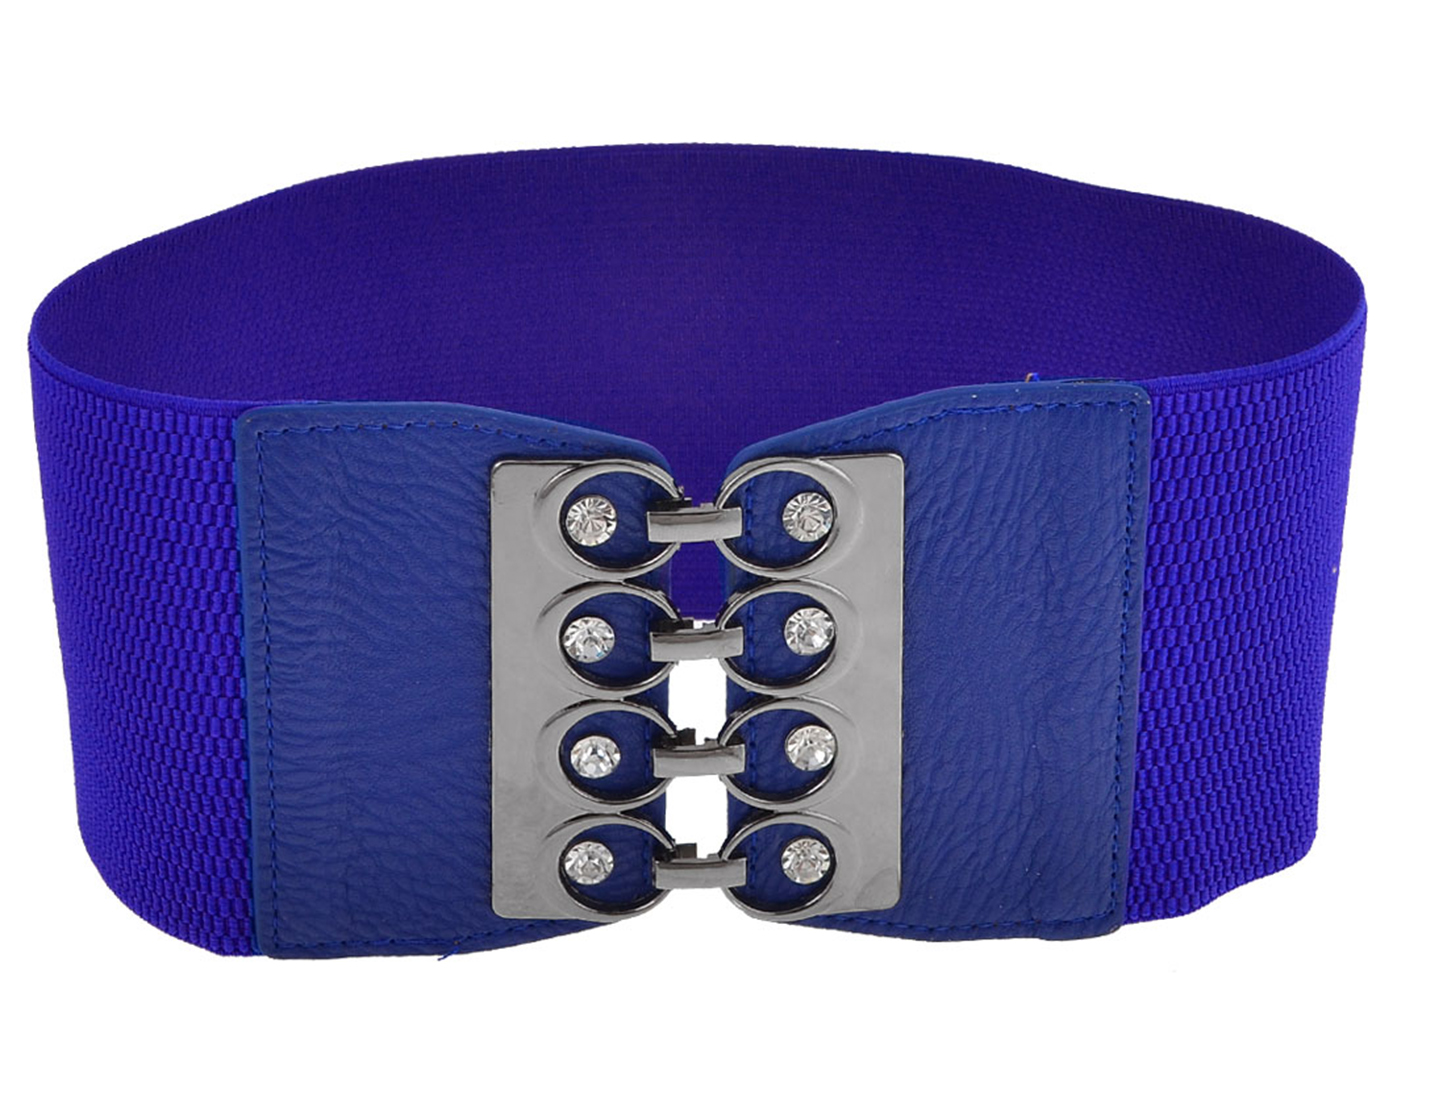 Ladies Glittery Rhinestones Detail Interlock Buckle Elastic Cinch Belt Dark Blue